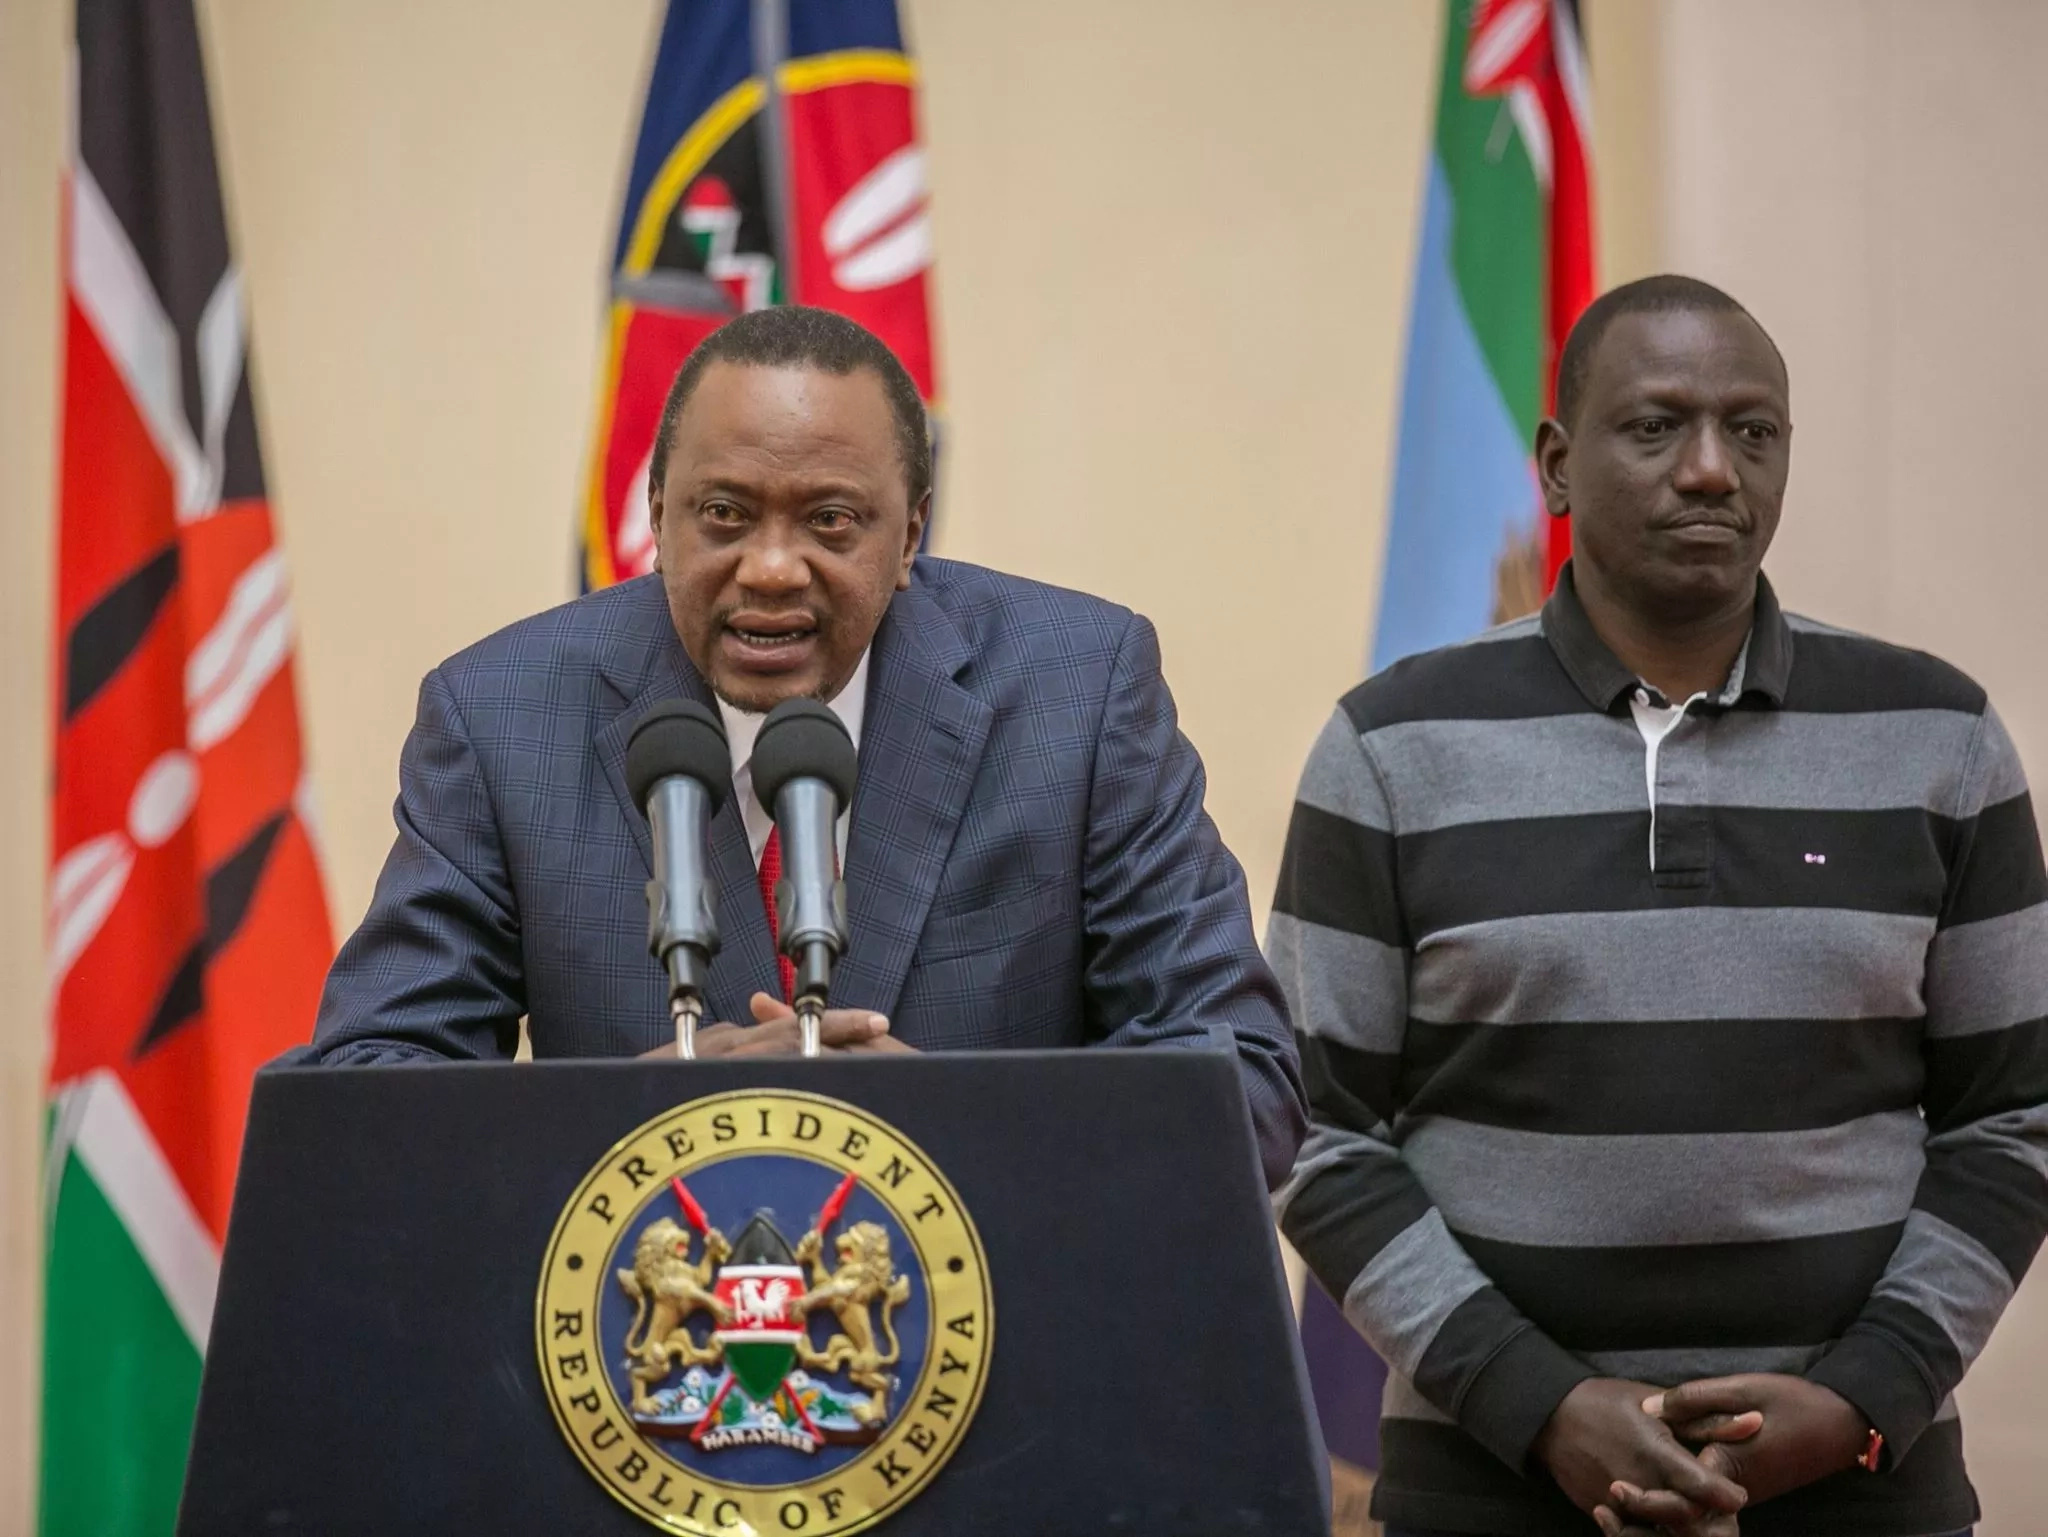 Kenya's Supreme Court Cancels Presidential Election